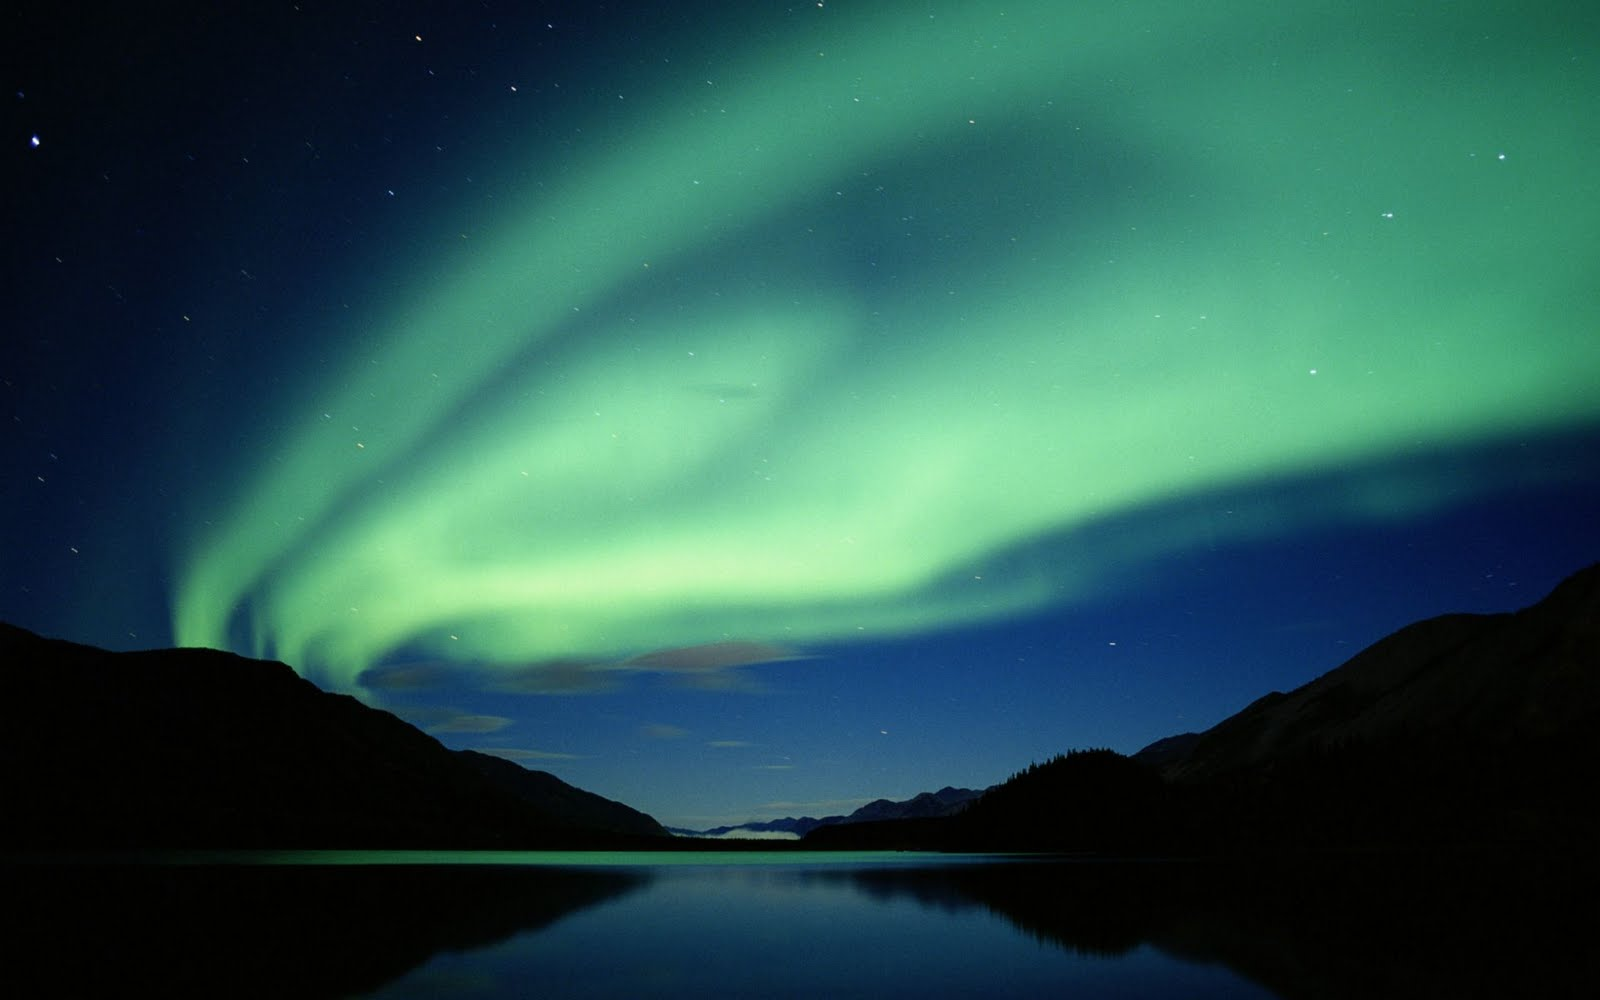 http://3.bp.blogspot.com/_I-_Dr8gnElM/TBSKhDRku6I/AAAAAAAAAeo/0bSO6wv2c48/s1600/vista-wallpaper-aurora-at-night.jpg